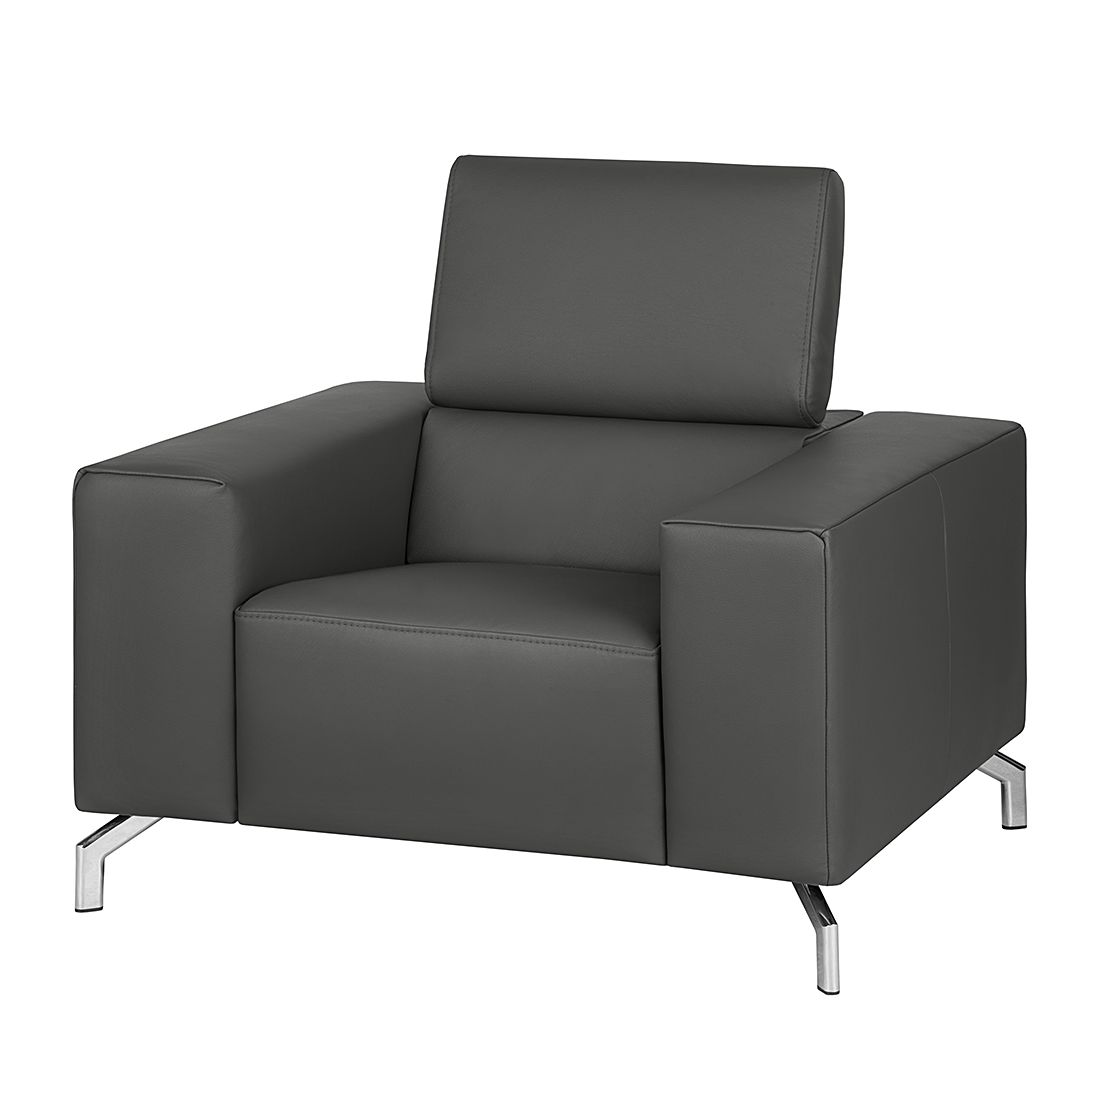 fauteuil varberg xxl cuir v ritable gris fonc loftscape le fait main. Black Bedroom Furniture Sets. Home Design Ideas